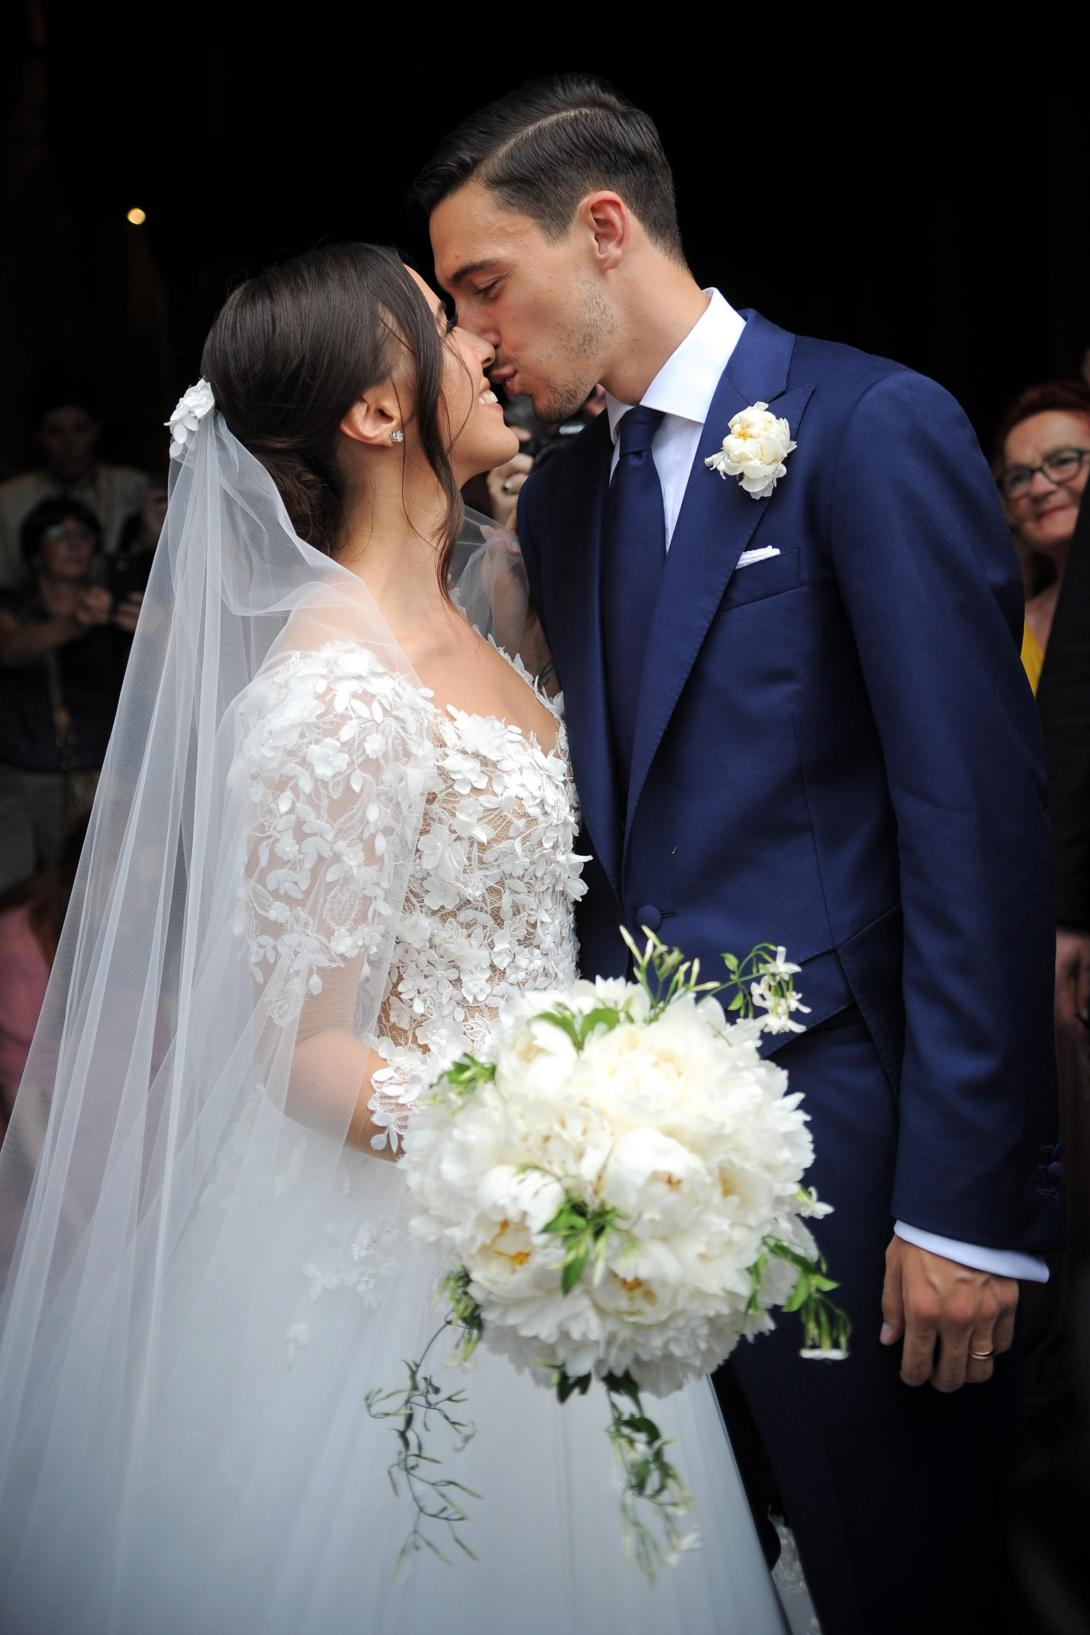 Matteo Darmian and long-term fiancee Francesca Cormanni tie the knot in Italy